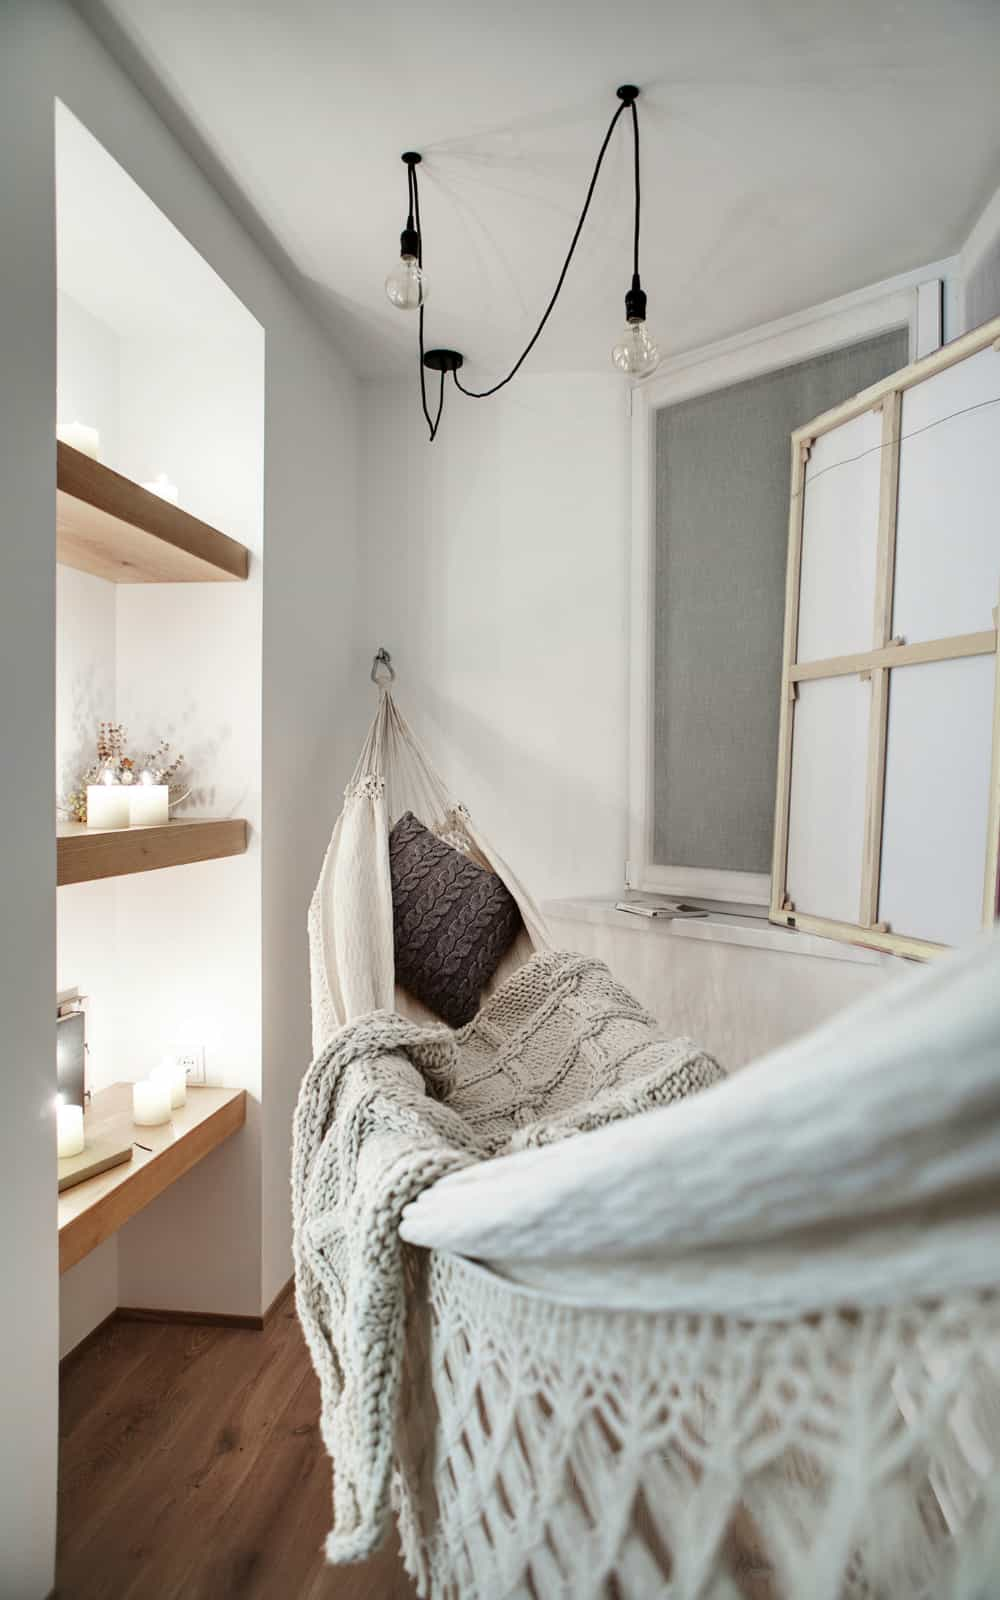 Tiny room with a hammock